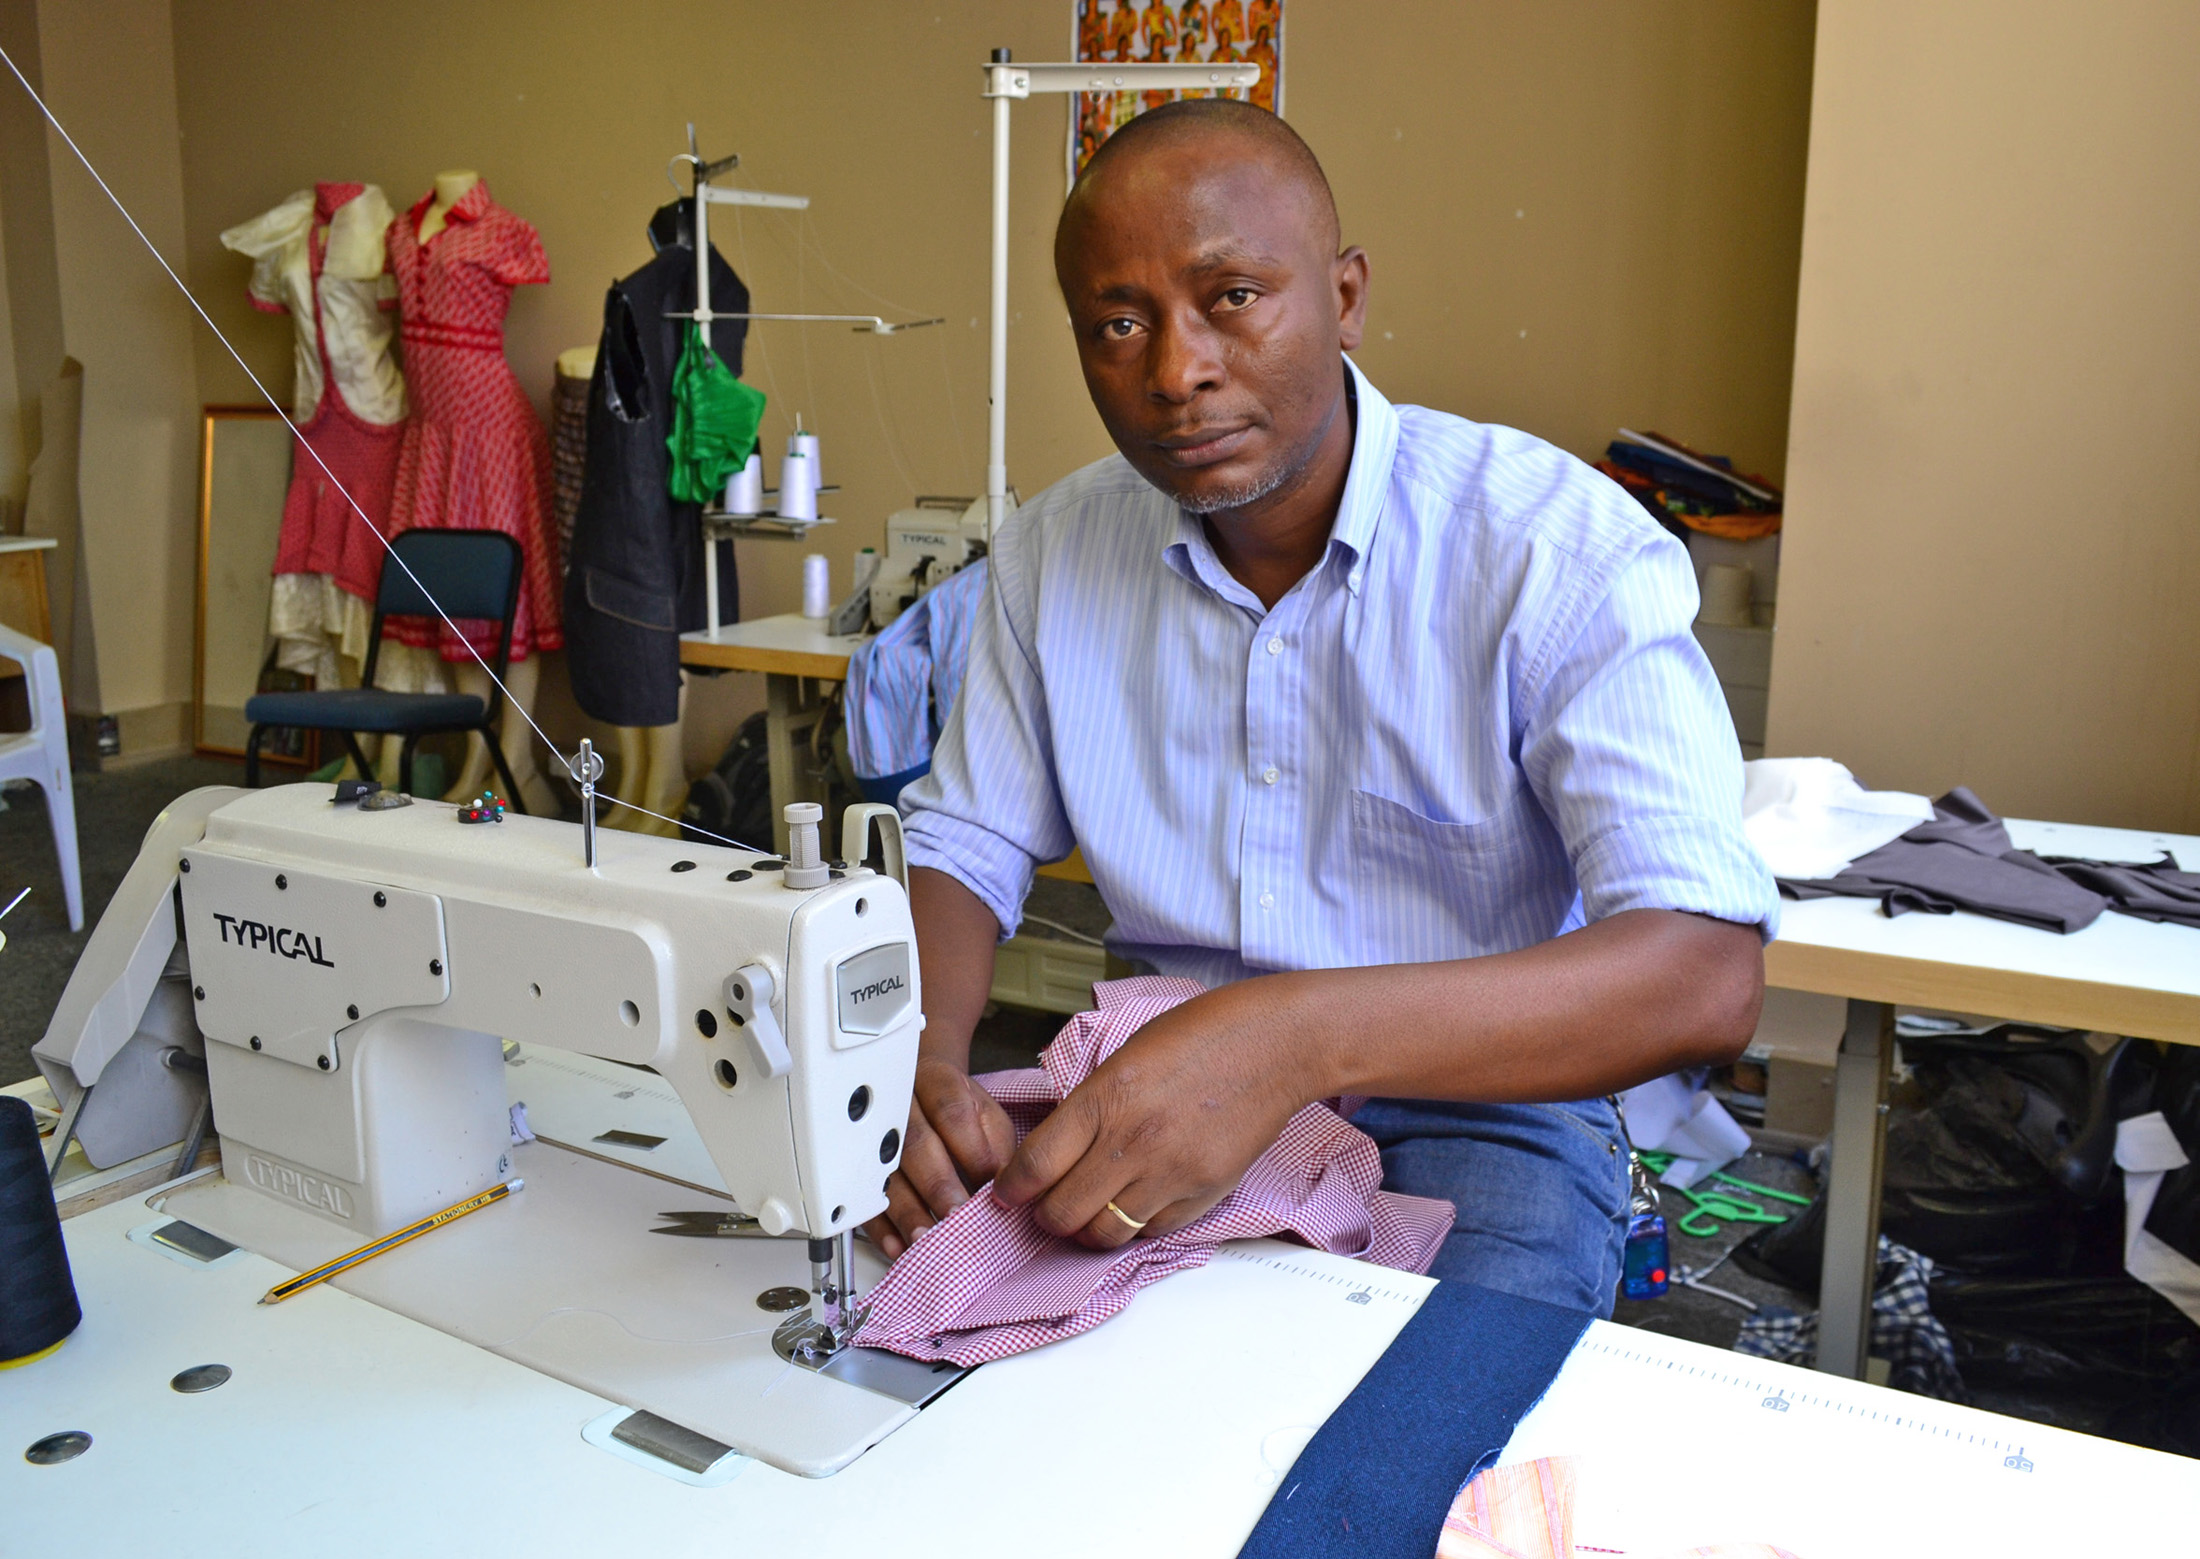 With business skills training and a grant from Jesuit Refugee Service, Clement Mukengeshay, a refugee from the Democratic Republic of Congo, has started a dressmaking business in inner-city Johannesburg